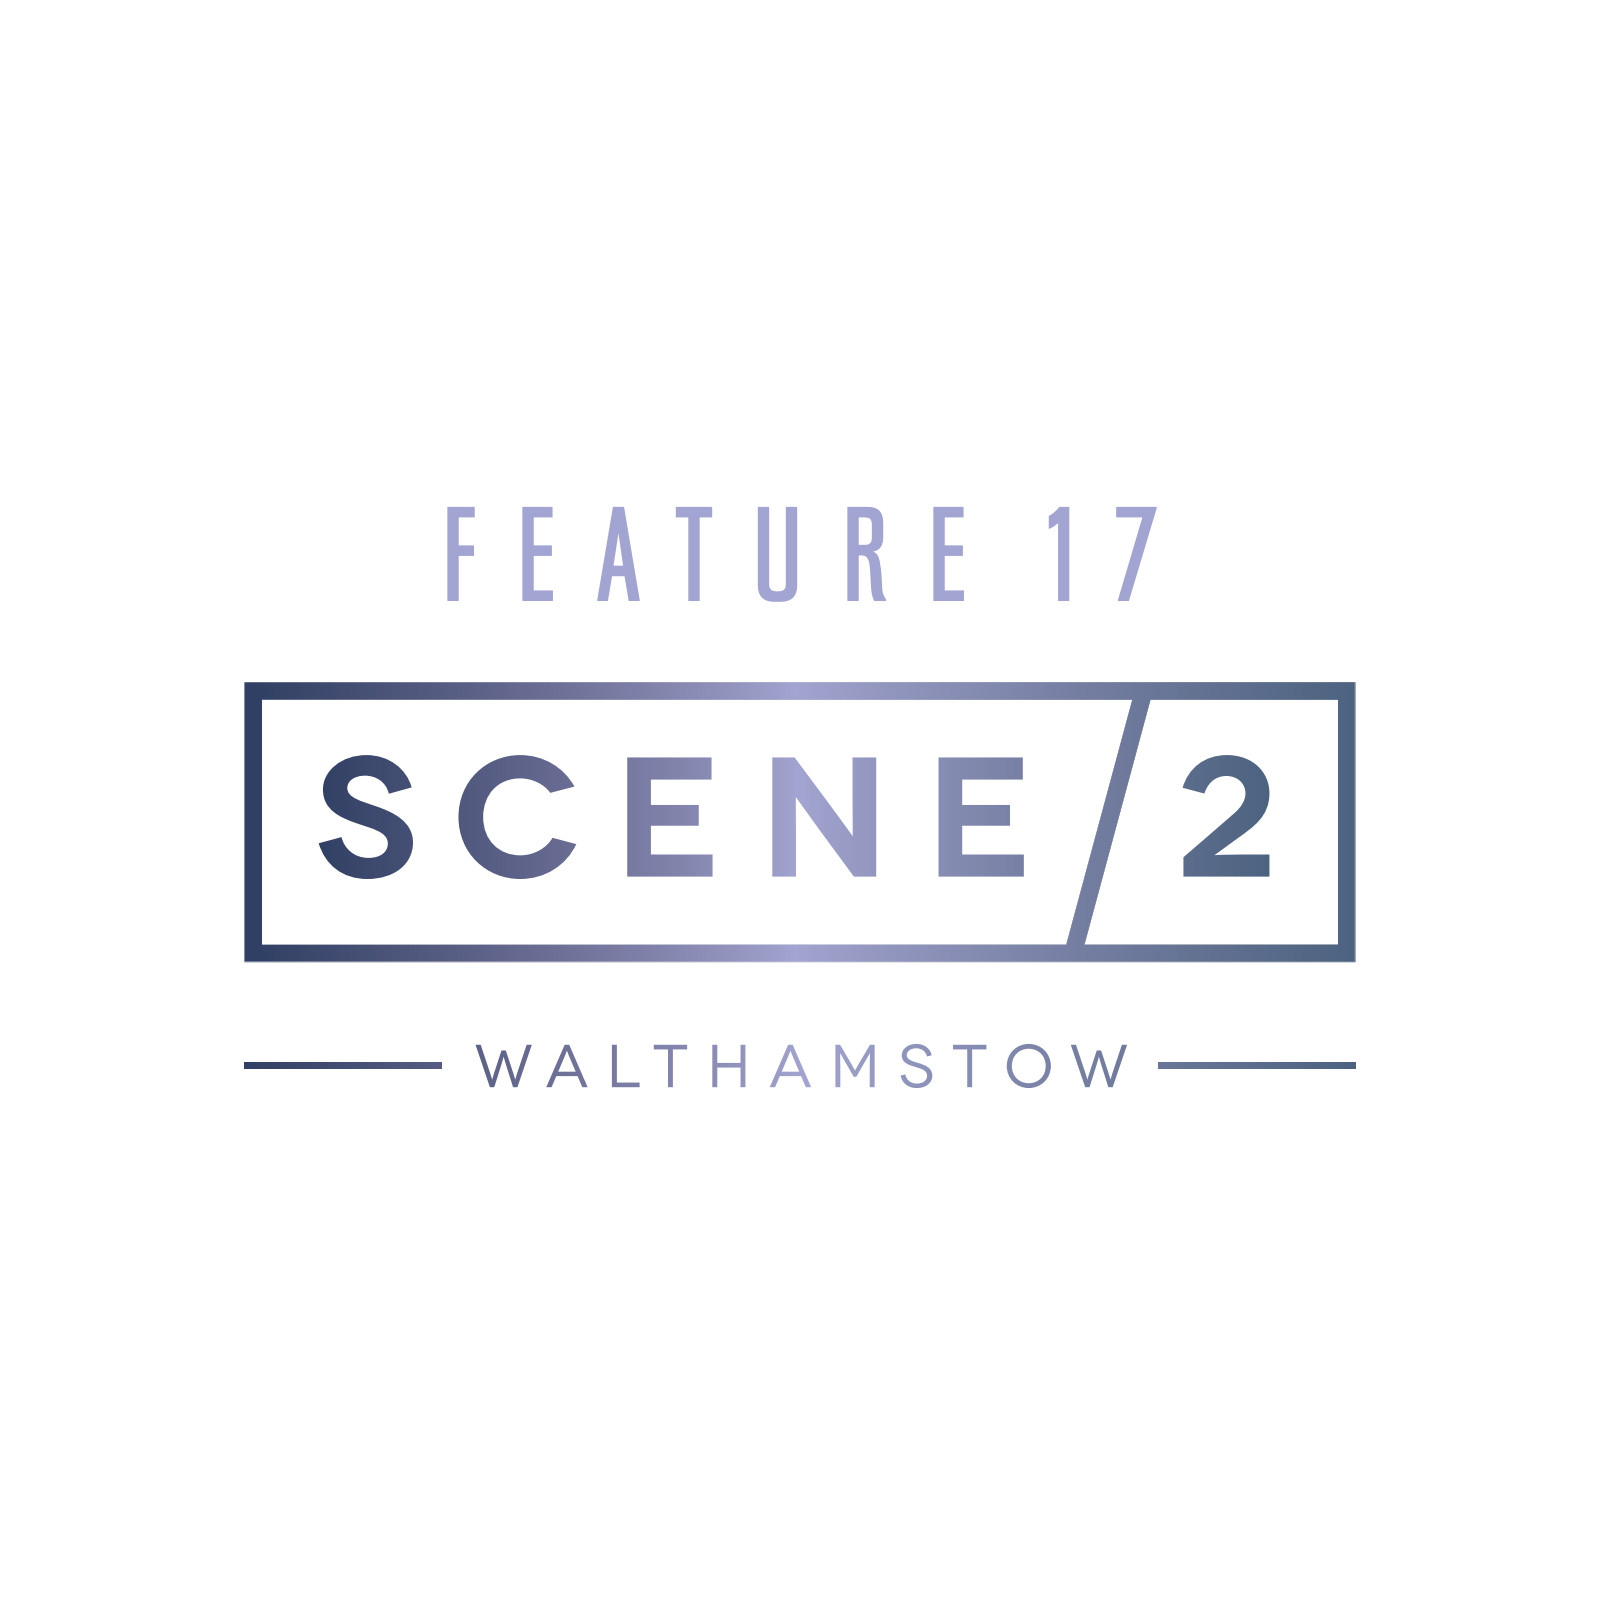 Scene 2 at Feature17